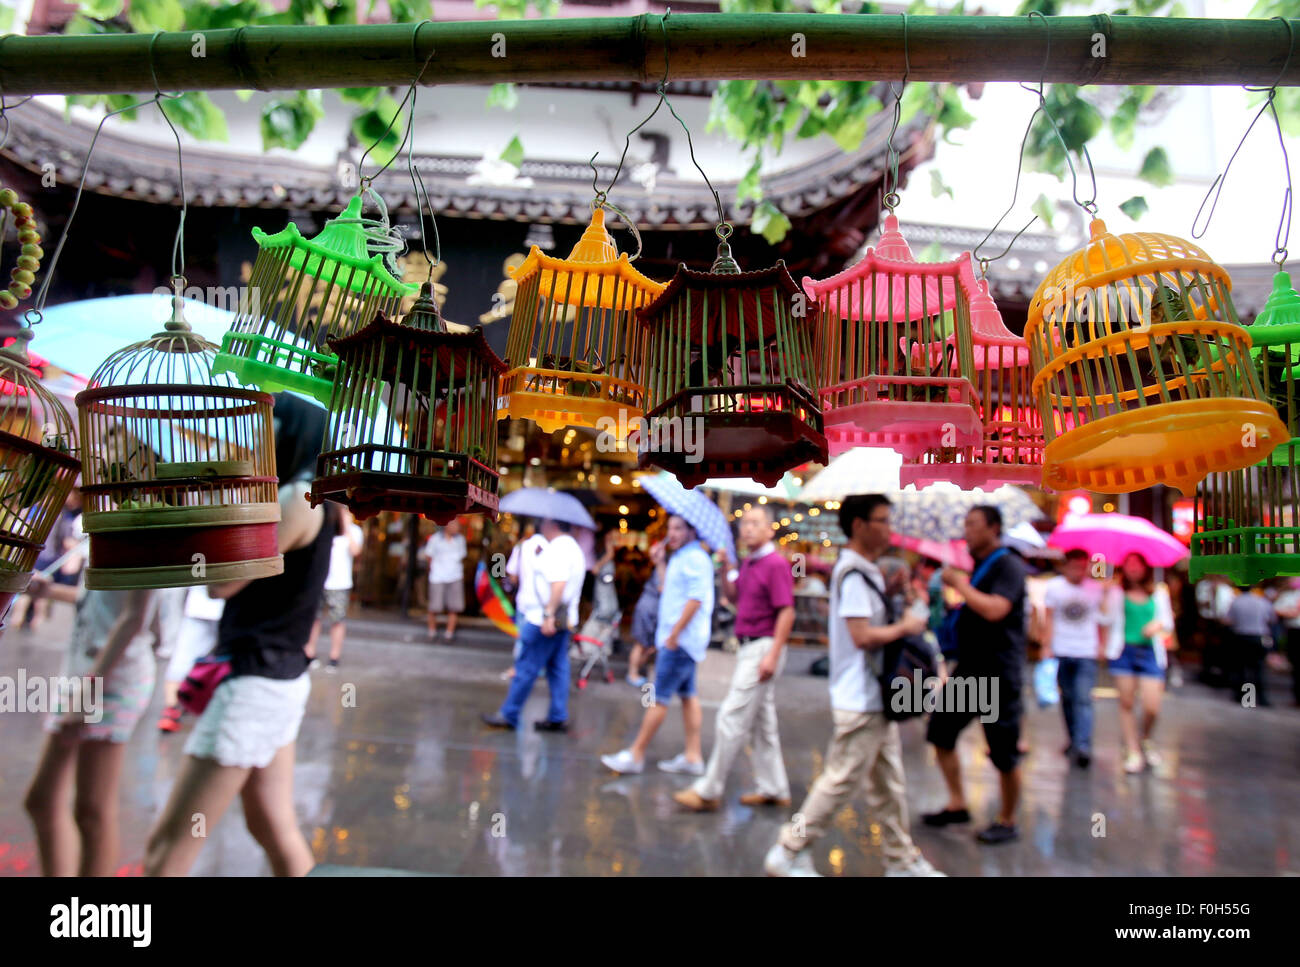 Shanghai, China. 16th Aug, 2015. Photo taken on Aug. 16, 2015 shows cricket cages at a night fair in Yu Garden of - Stock Image